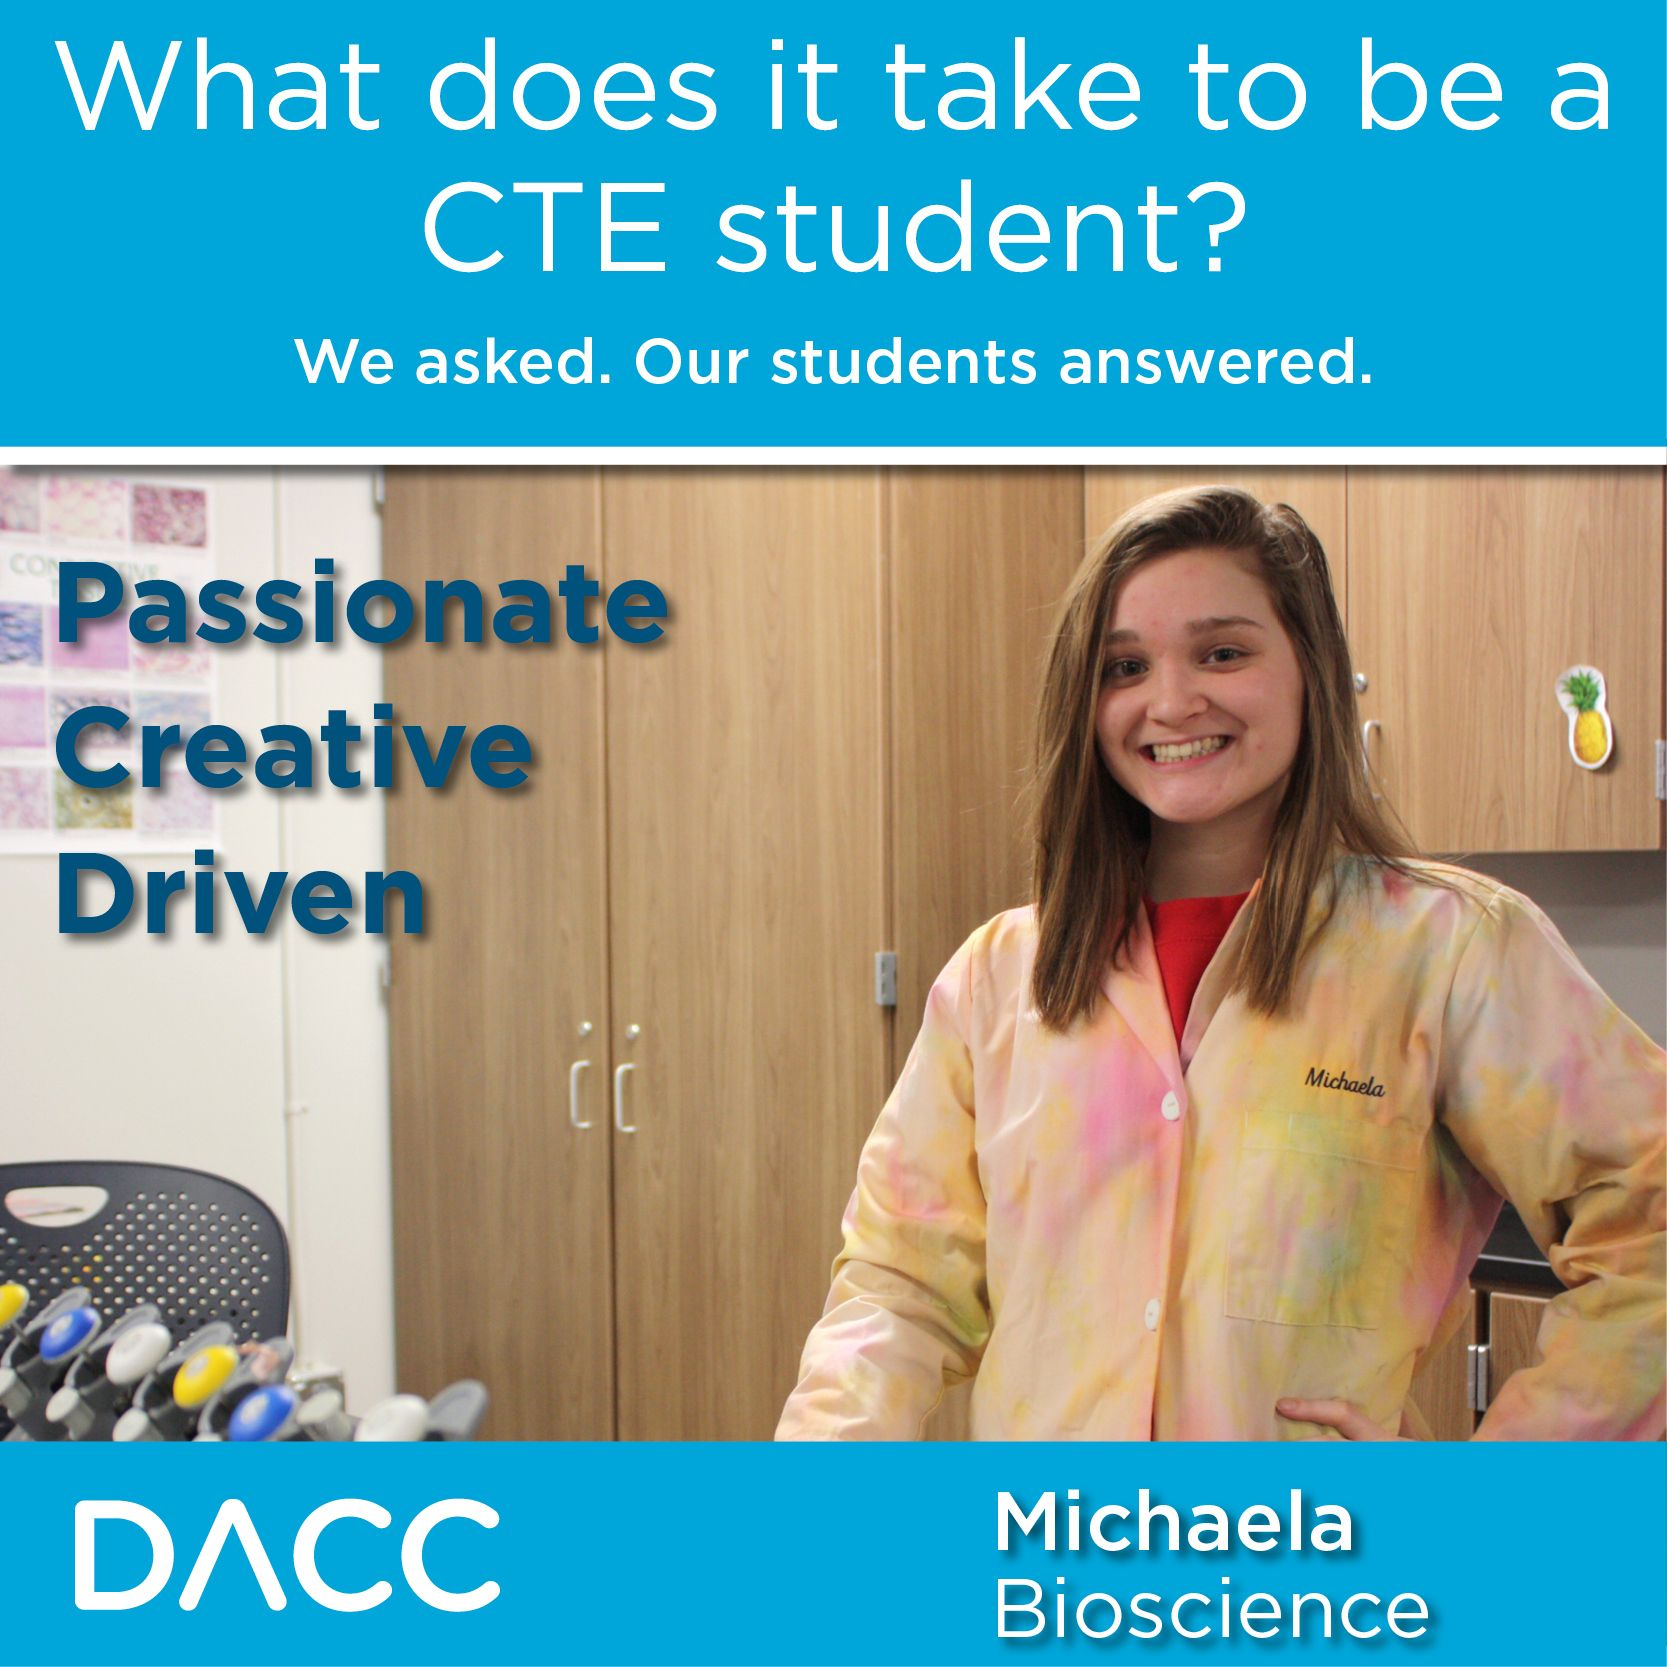 """Students at DACC are passionate and forward thinking"